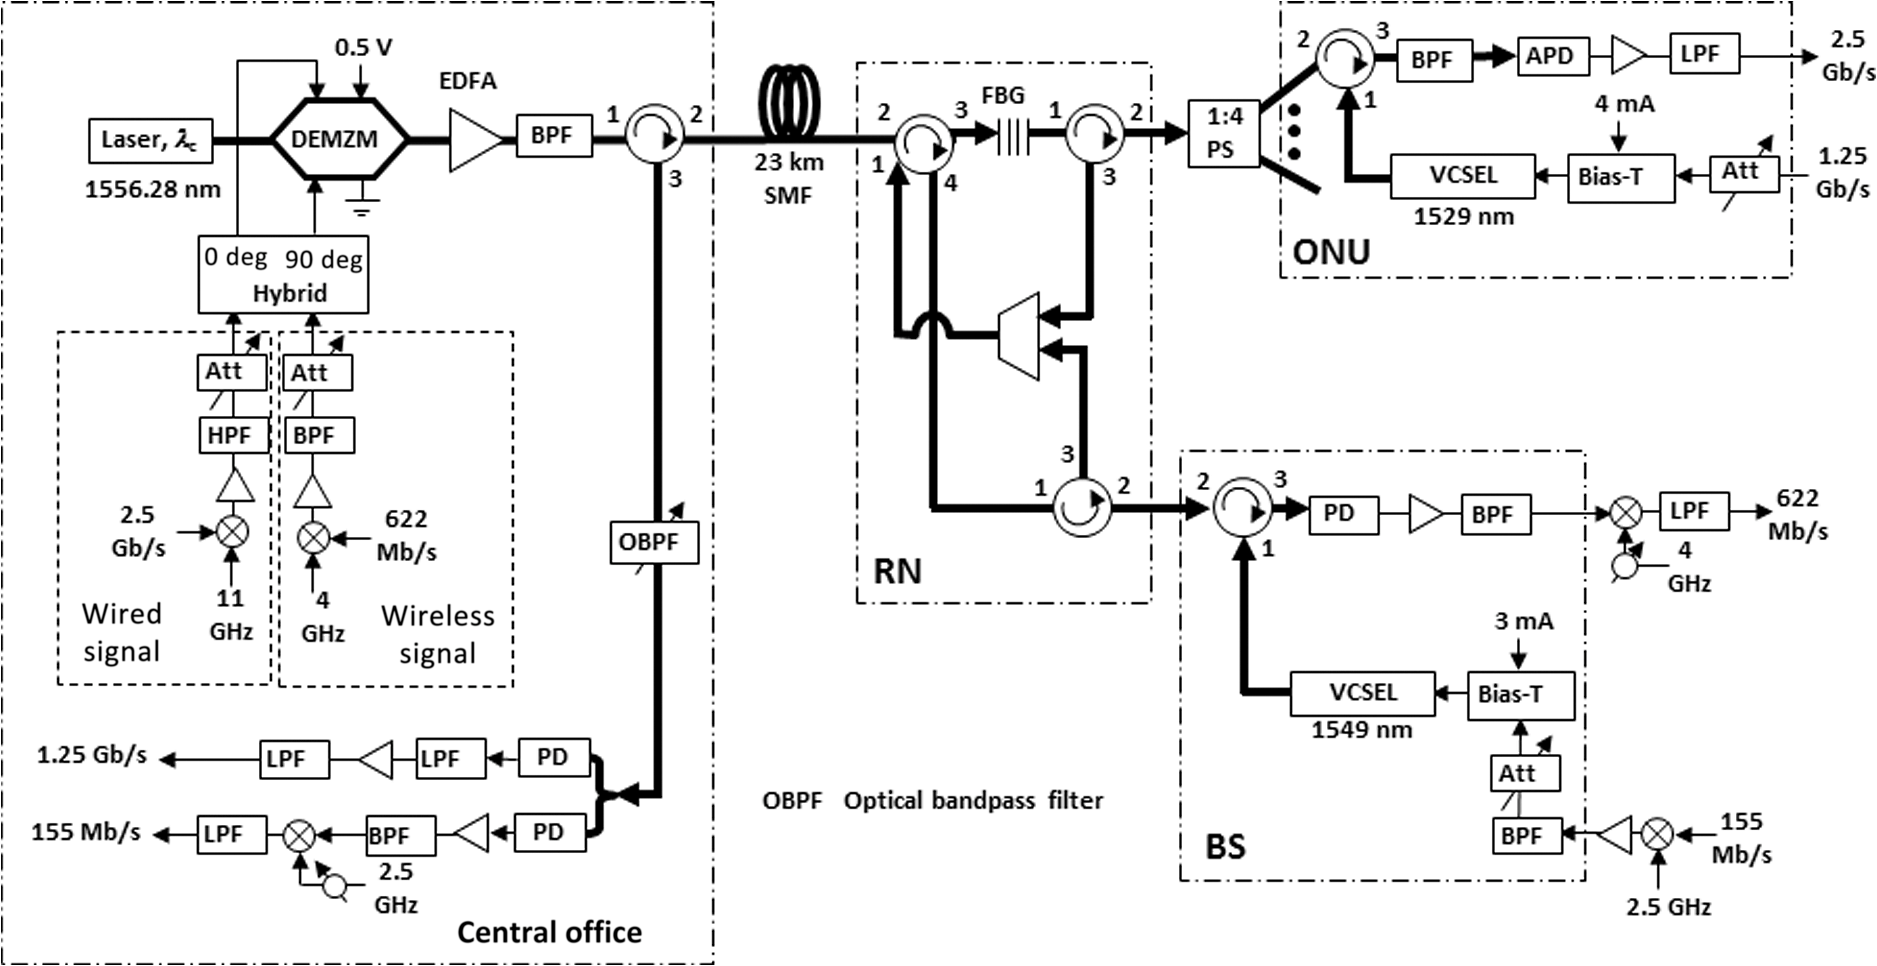 Review Of Physical Layer Networking For Optical Wireless Integration Including Fiber Optics Boom Control On Wiring Home With Optic Experimental Setup Full Duplex Demonstration Incorporating Interface In Rn